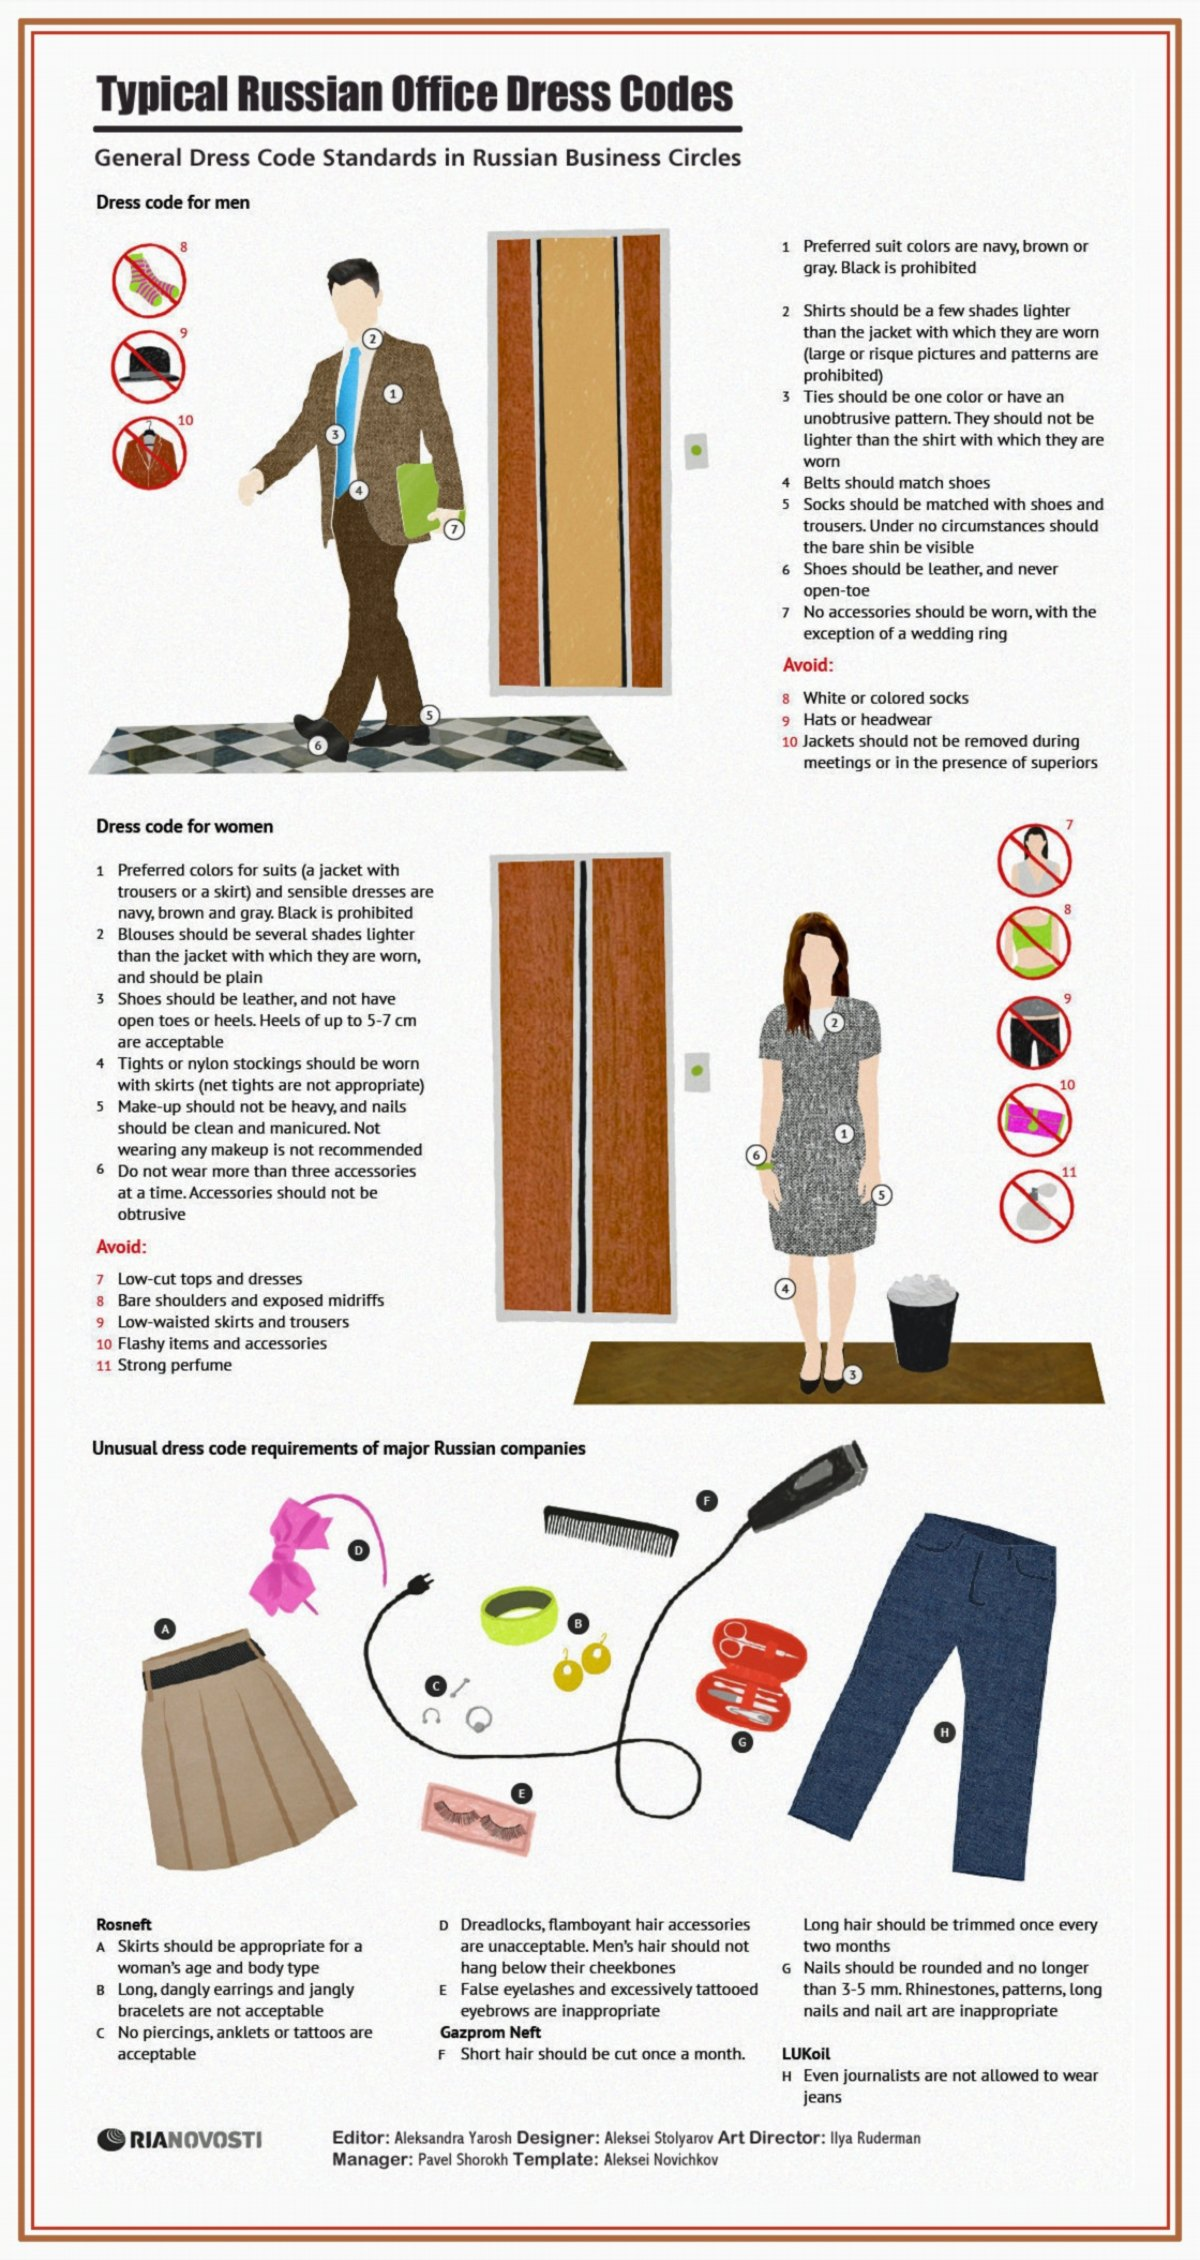 00 RIA-Novosti Infographics. Typical Russian Office Dress Codes . 2013